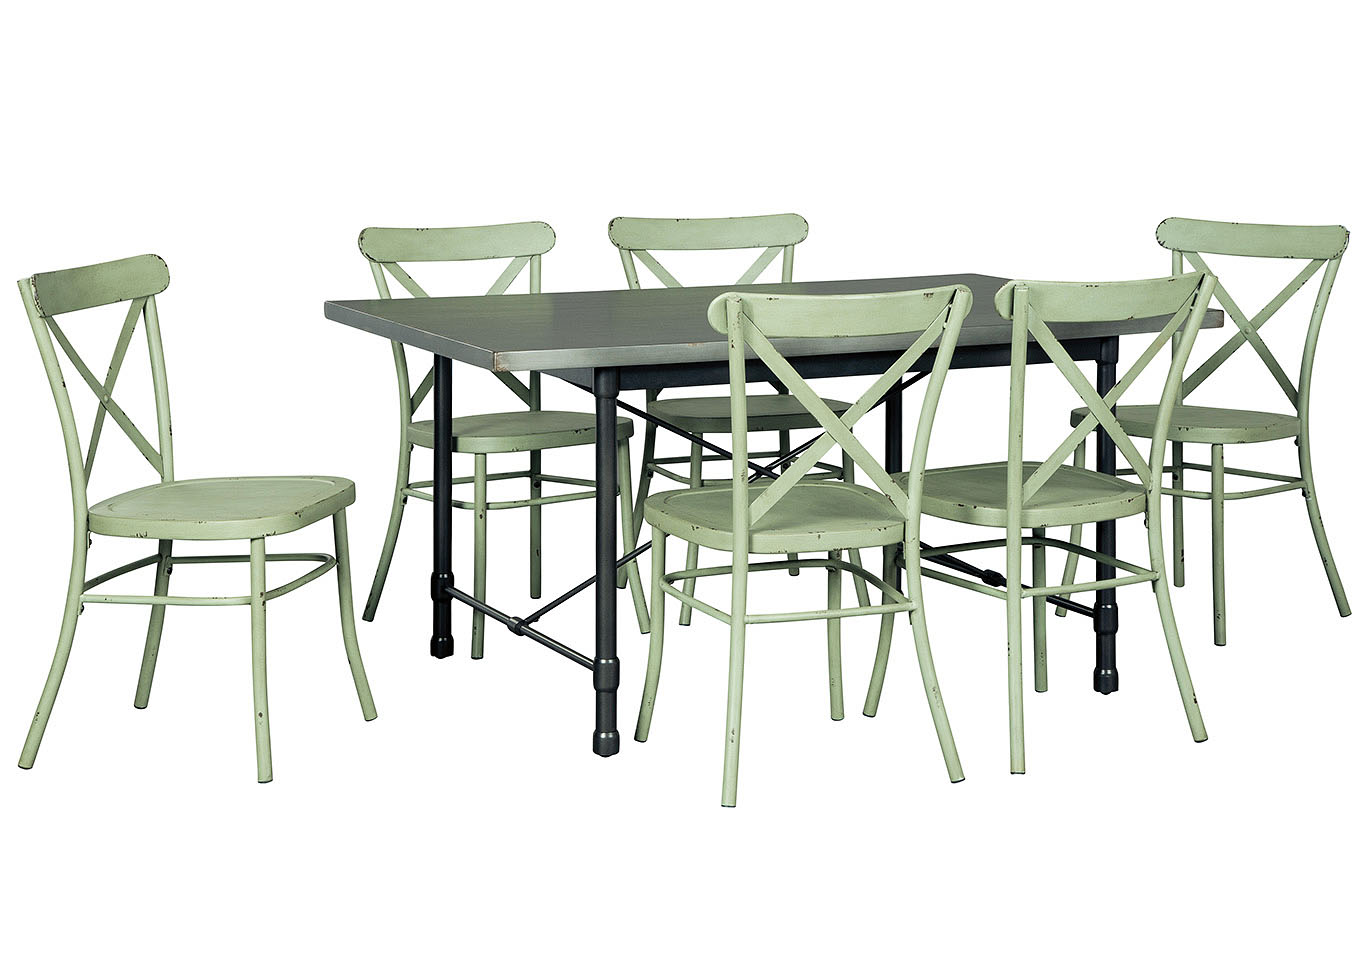 langlois furniture. Minnona Aged Steel Rectangular Dining Table W/6 Light Green Side Chairs,Signature Design Langlois Furniture I